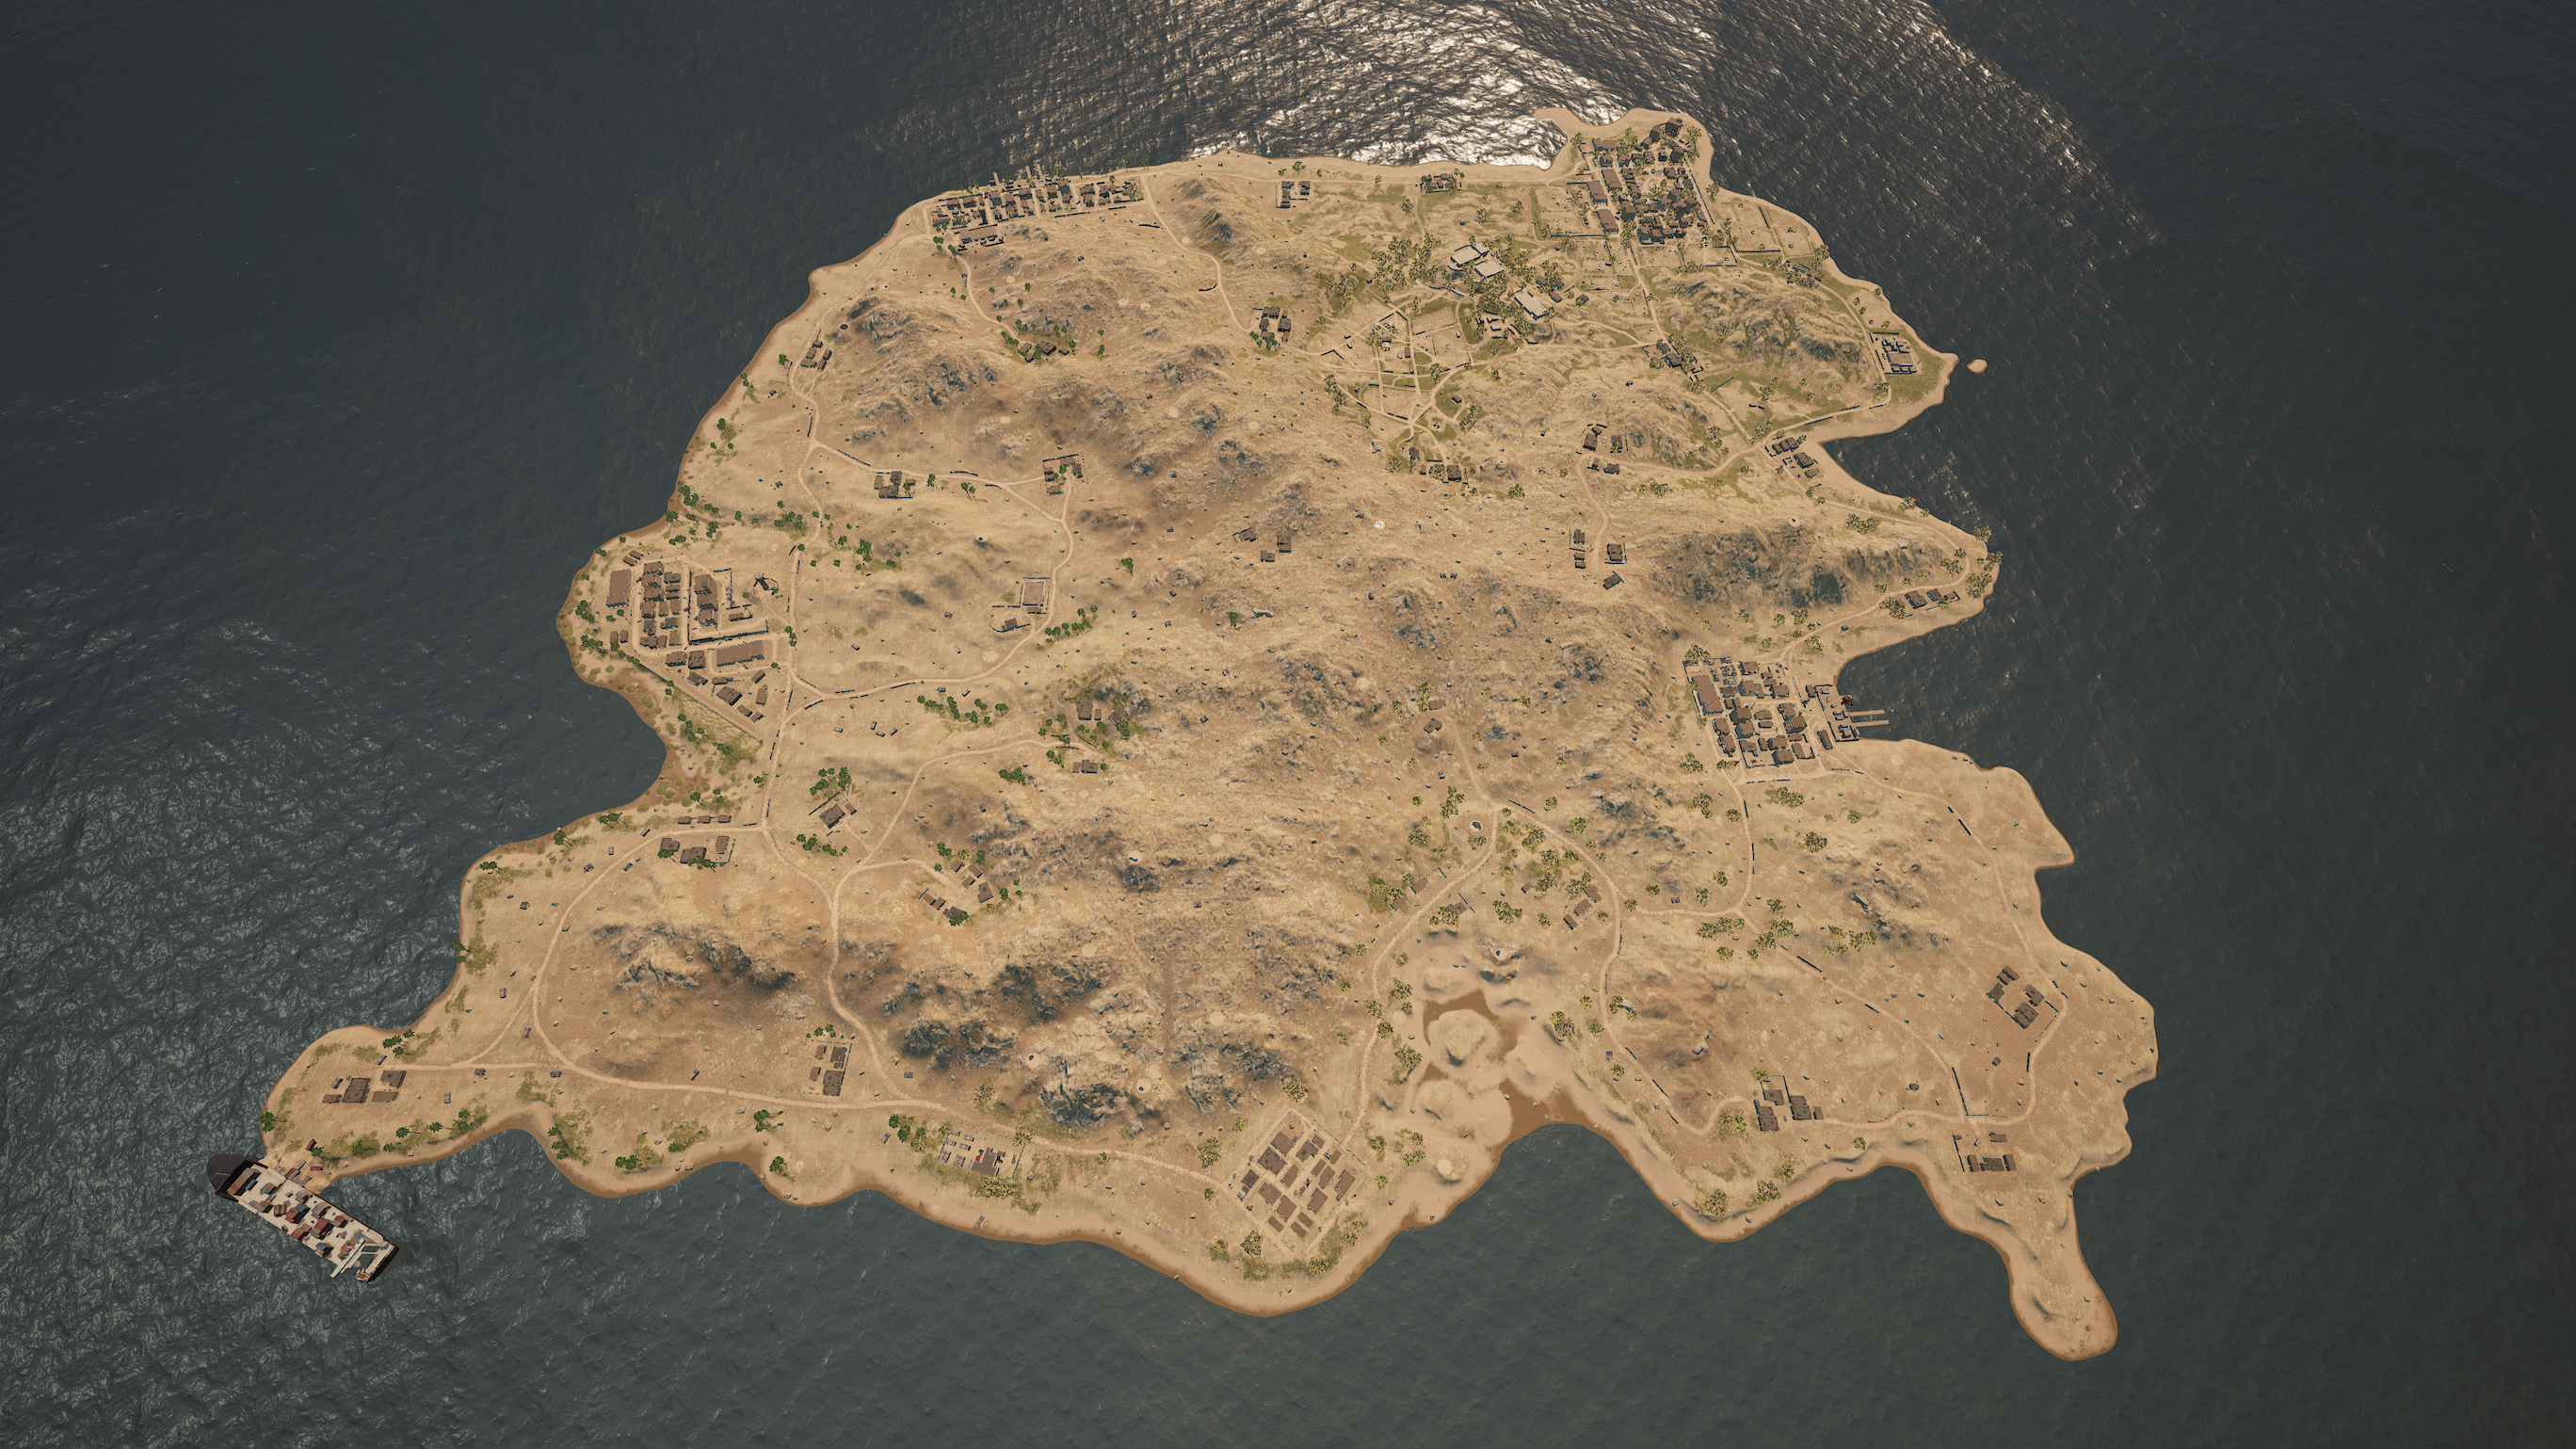 PUBG Season 6 - Aerial View of Karakin Map